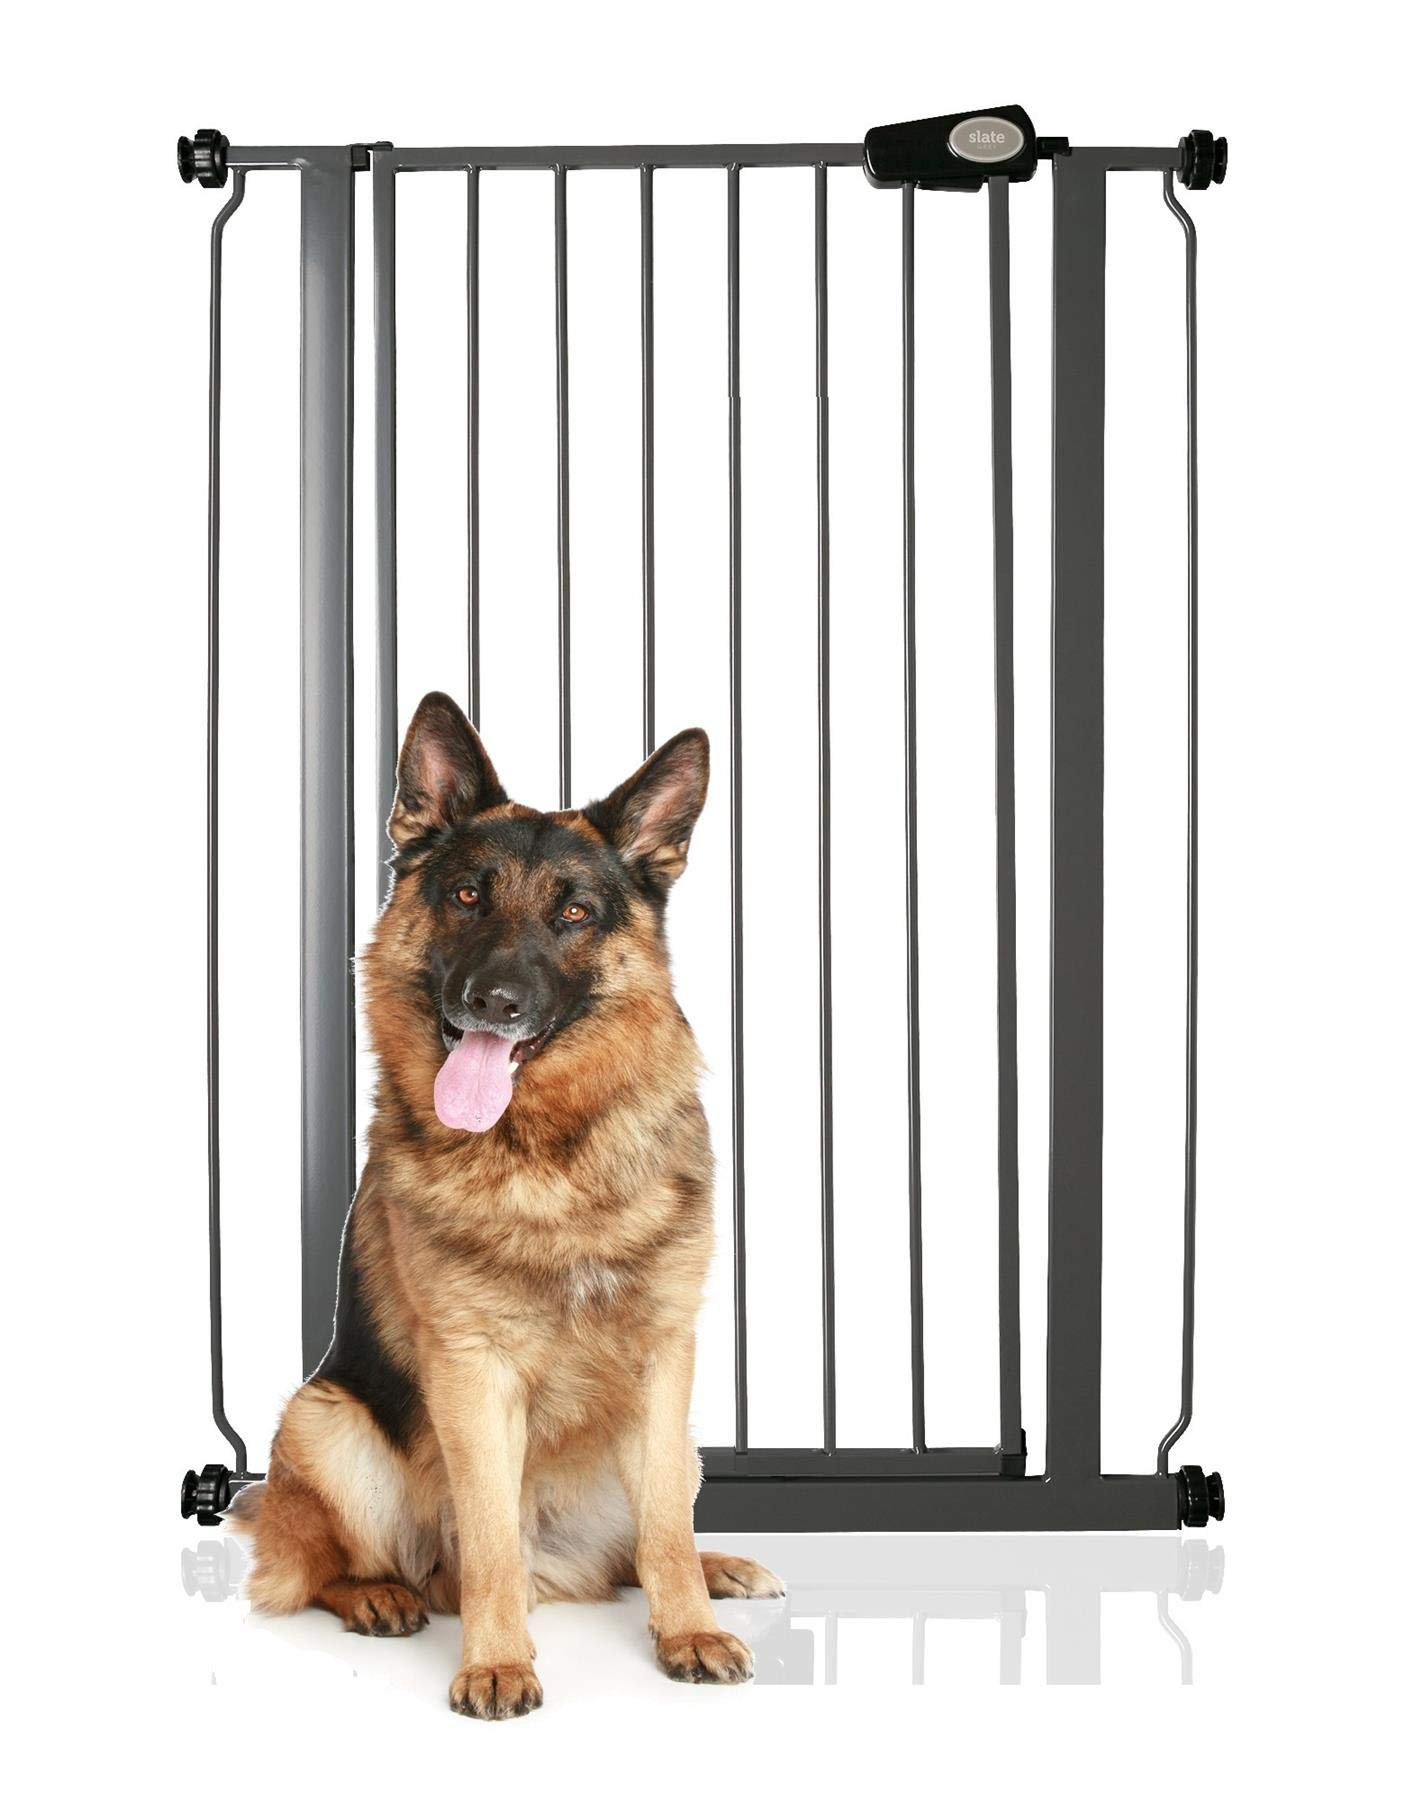 Bettacare Child and Pet Gate Slate Grey Standard 75cm - 82.6cm Bettacare Fits openings from 75cm to 83cm, height of gate 104cm Pressure fitted gate with slate grey finish One-handed operation 1